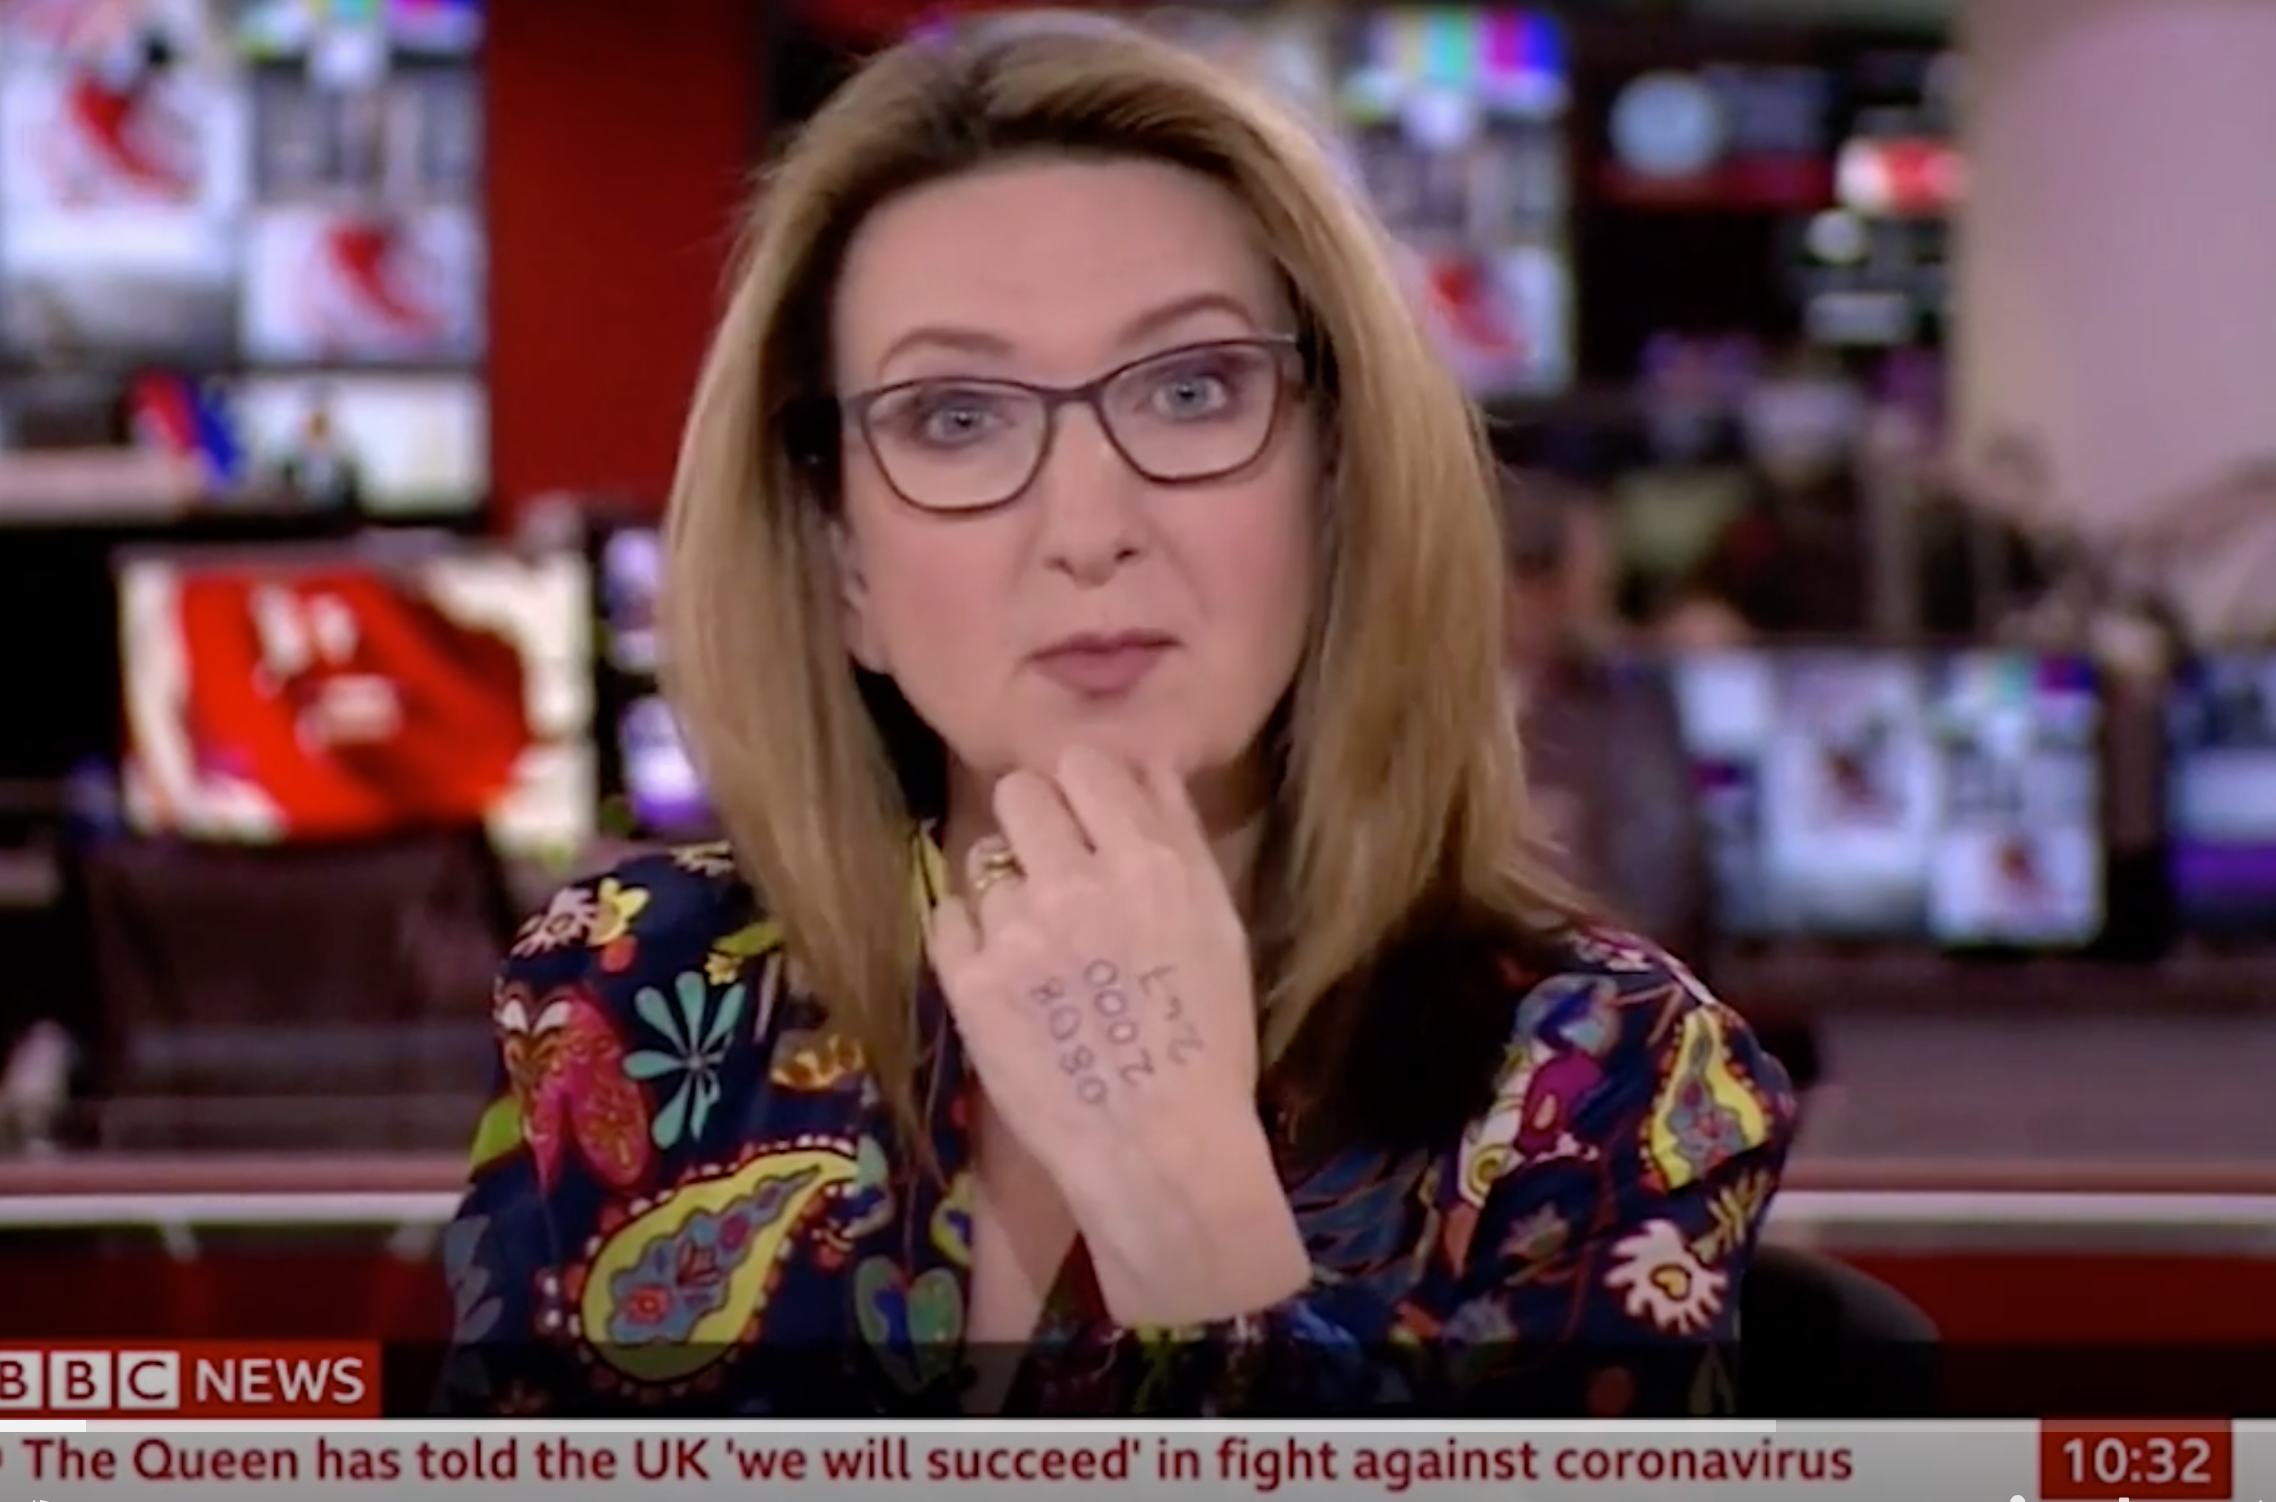 Victoria Derbyshire Presents Bbc News With Helpline On Her Hand